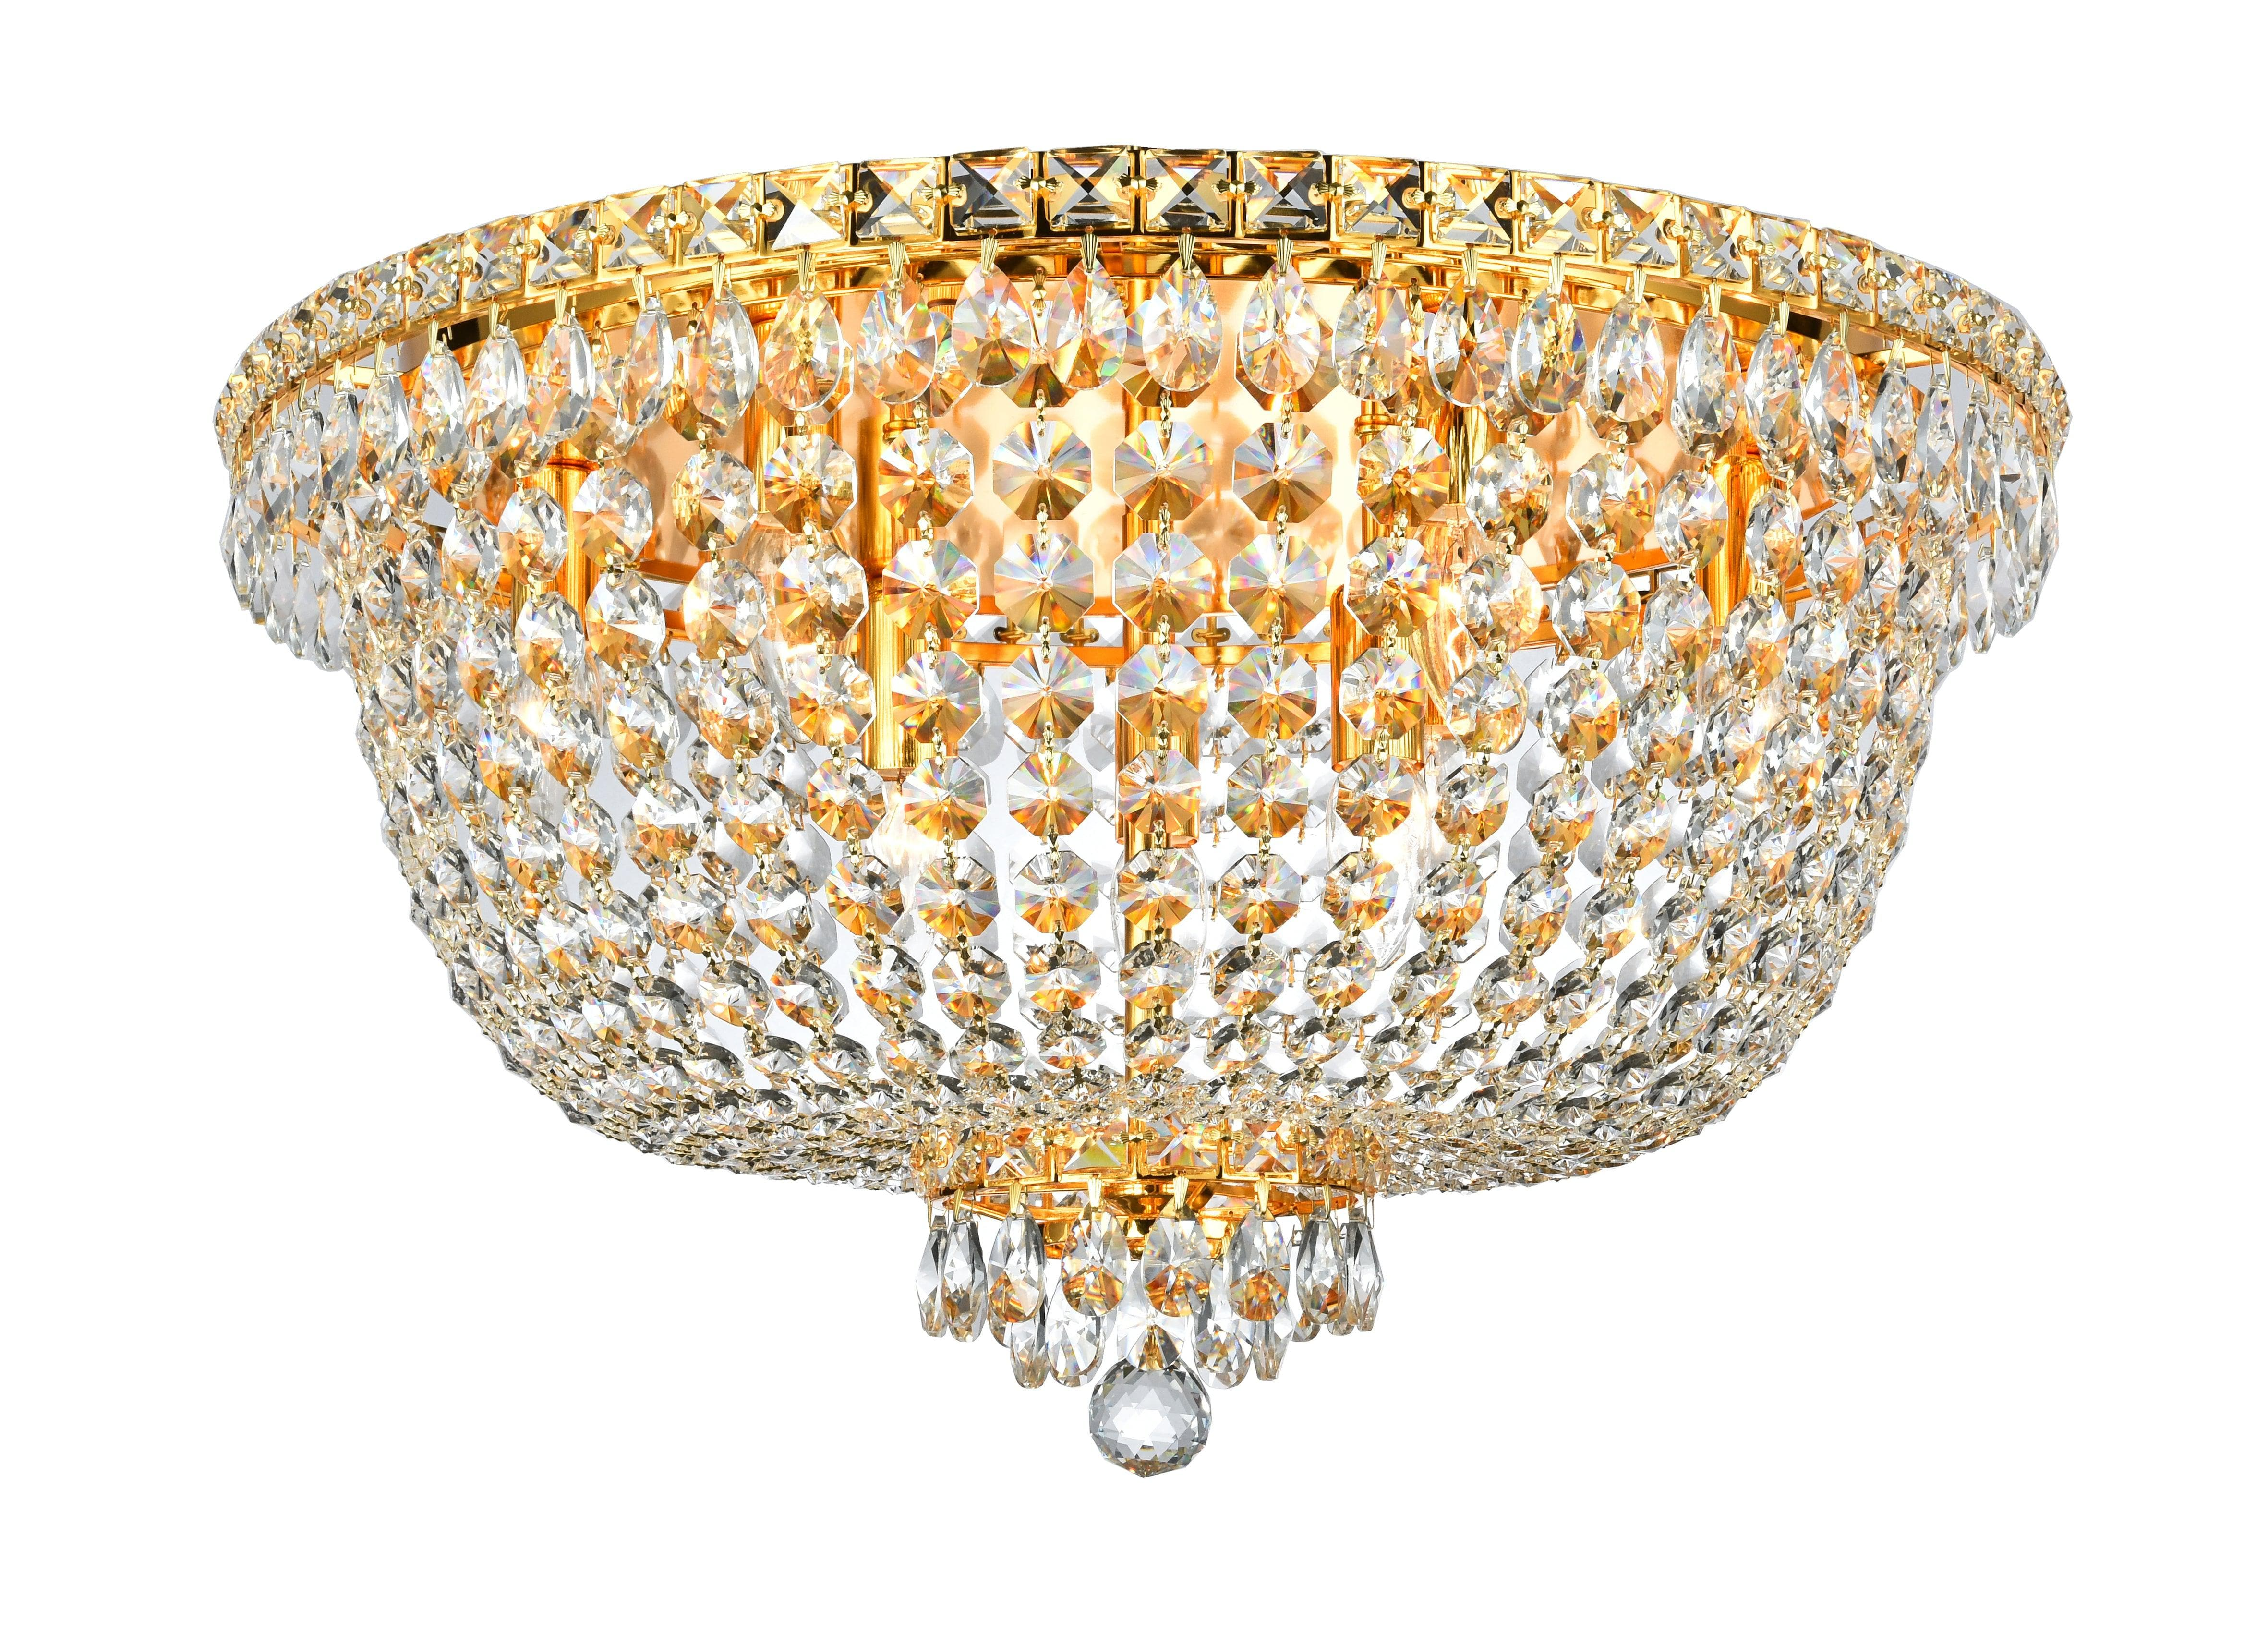 and ring up glass product celeste my black new light large lumh beach round chrome miami design drum chandelier drop home crystal